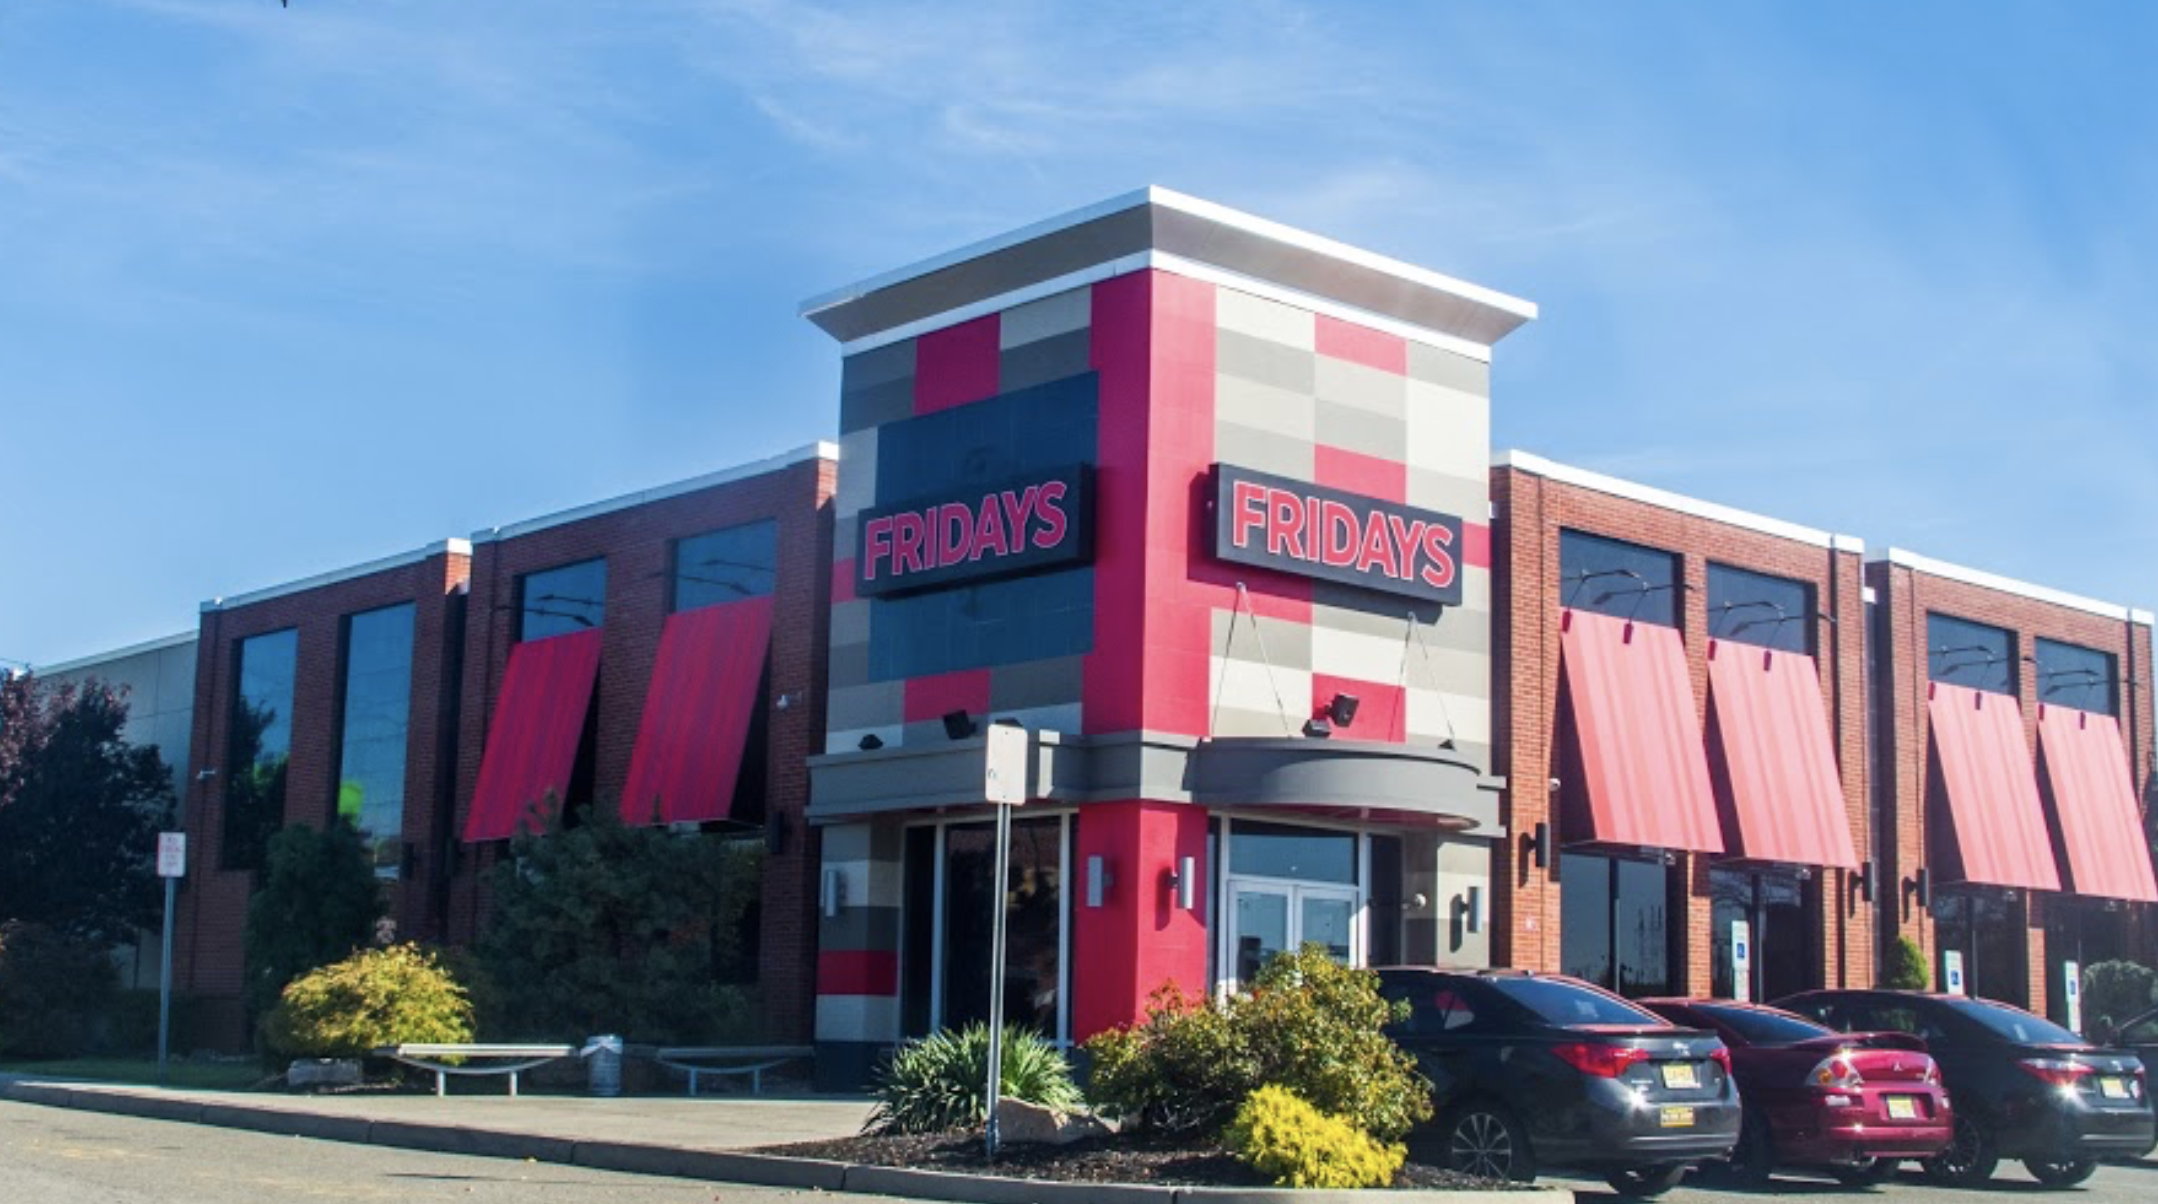 A photo of a Yaymaker Venue called TGI Fridays Linden located in Linden, NJ